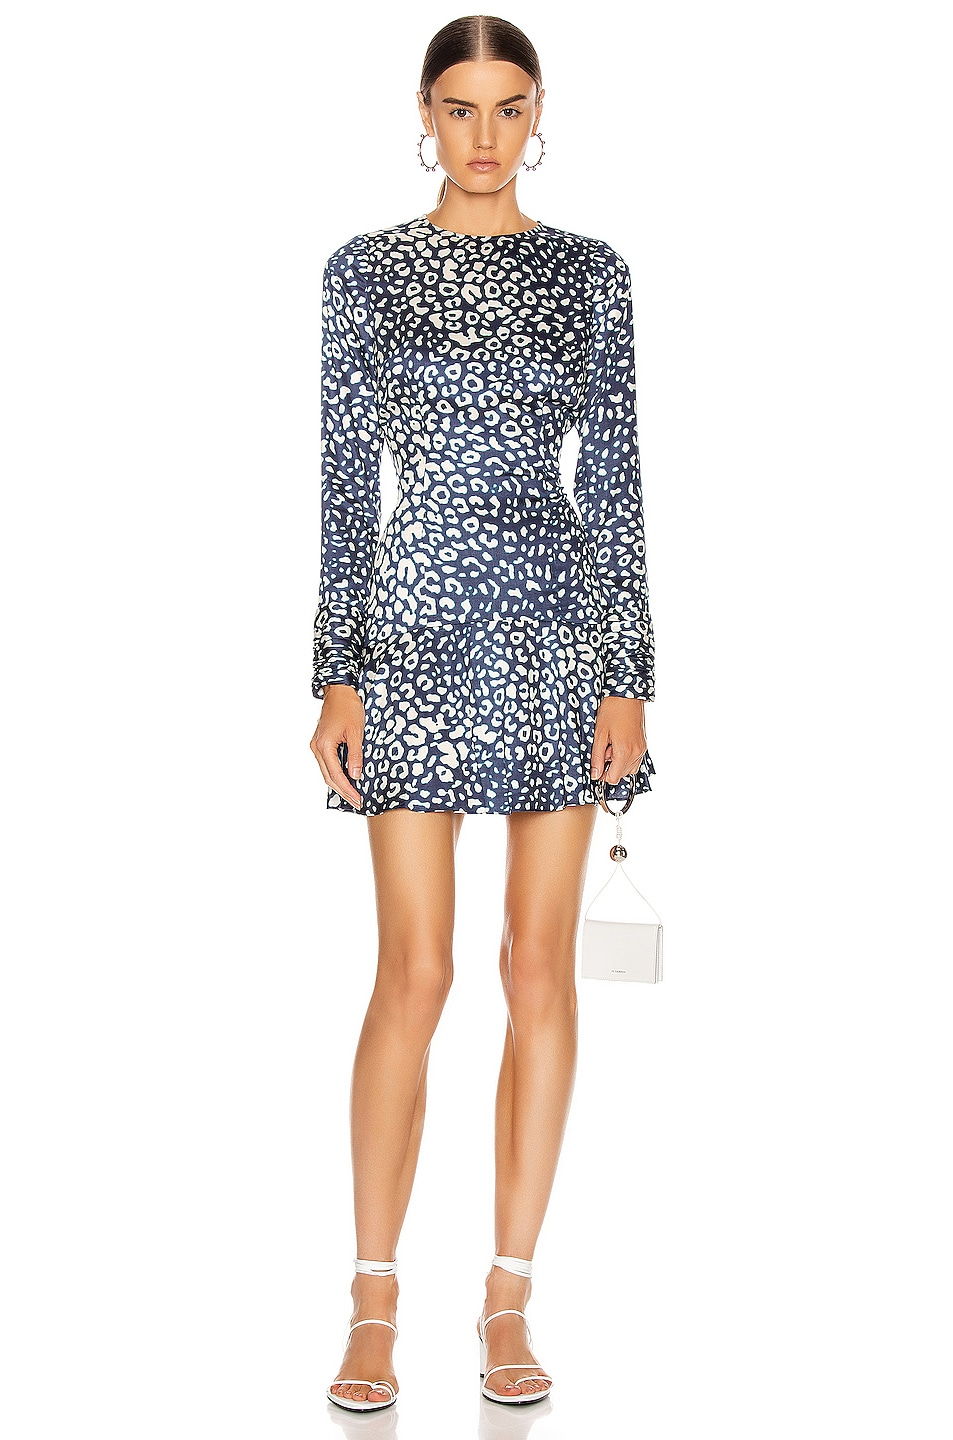 Image 1 of Alexis Madhu Dress in Marine Leopard